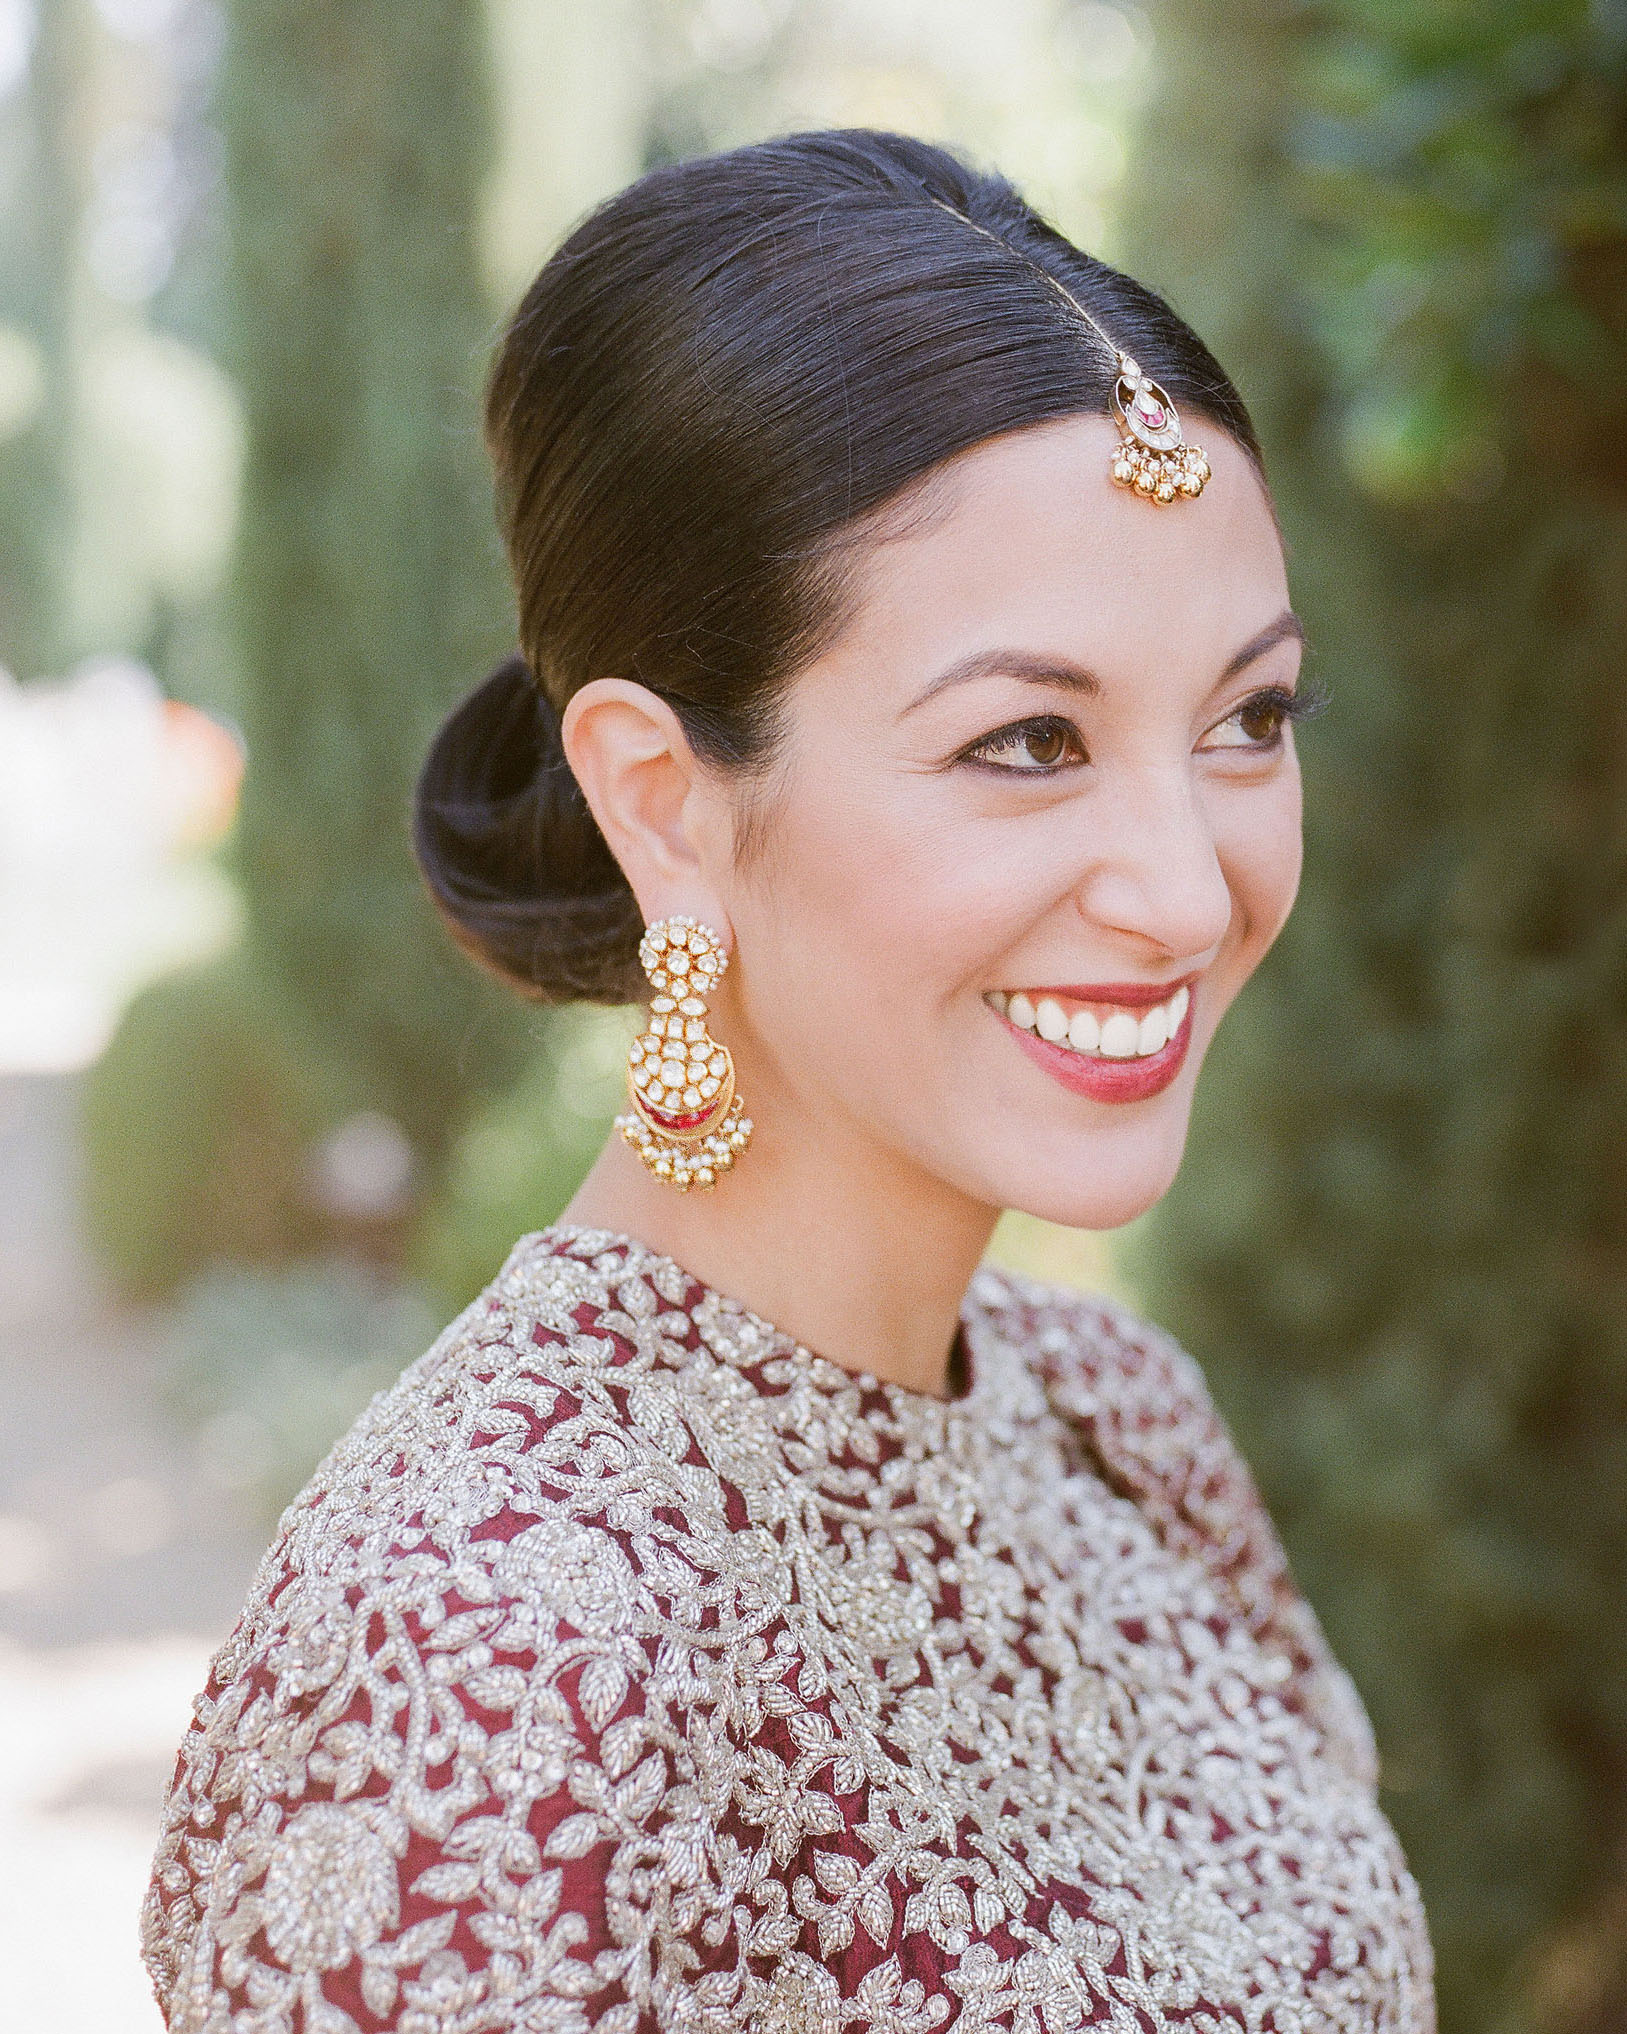 jenna alok wedding wine country california bride smiling